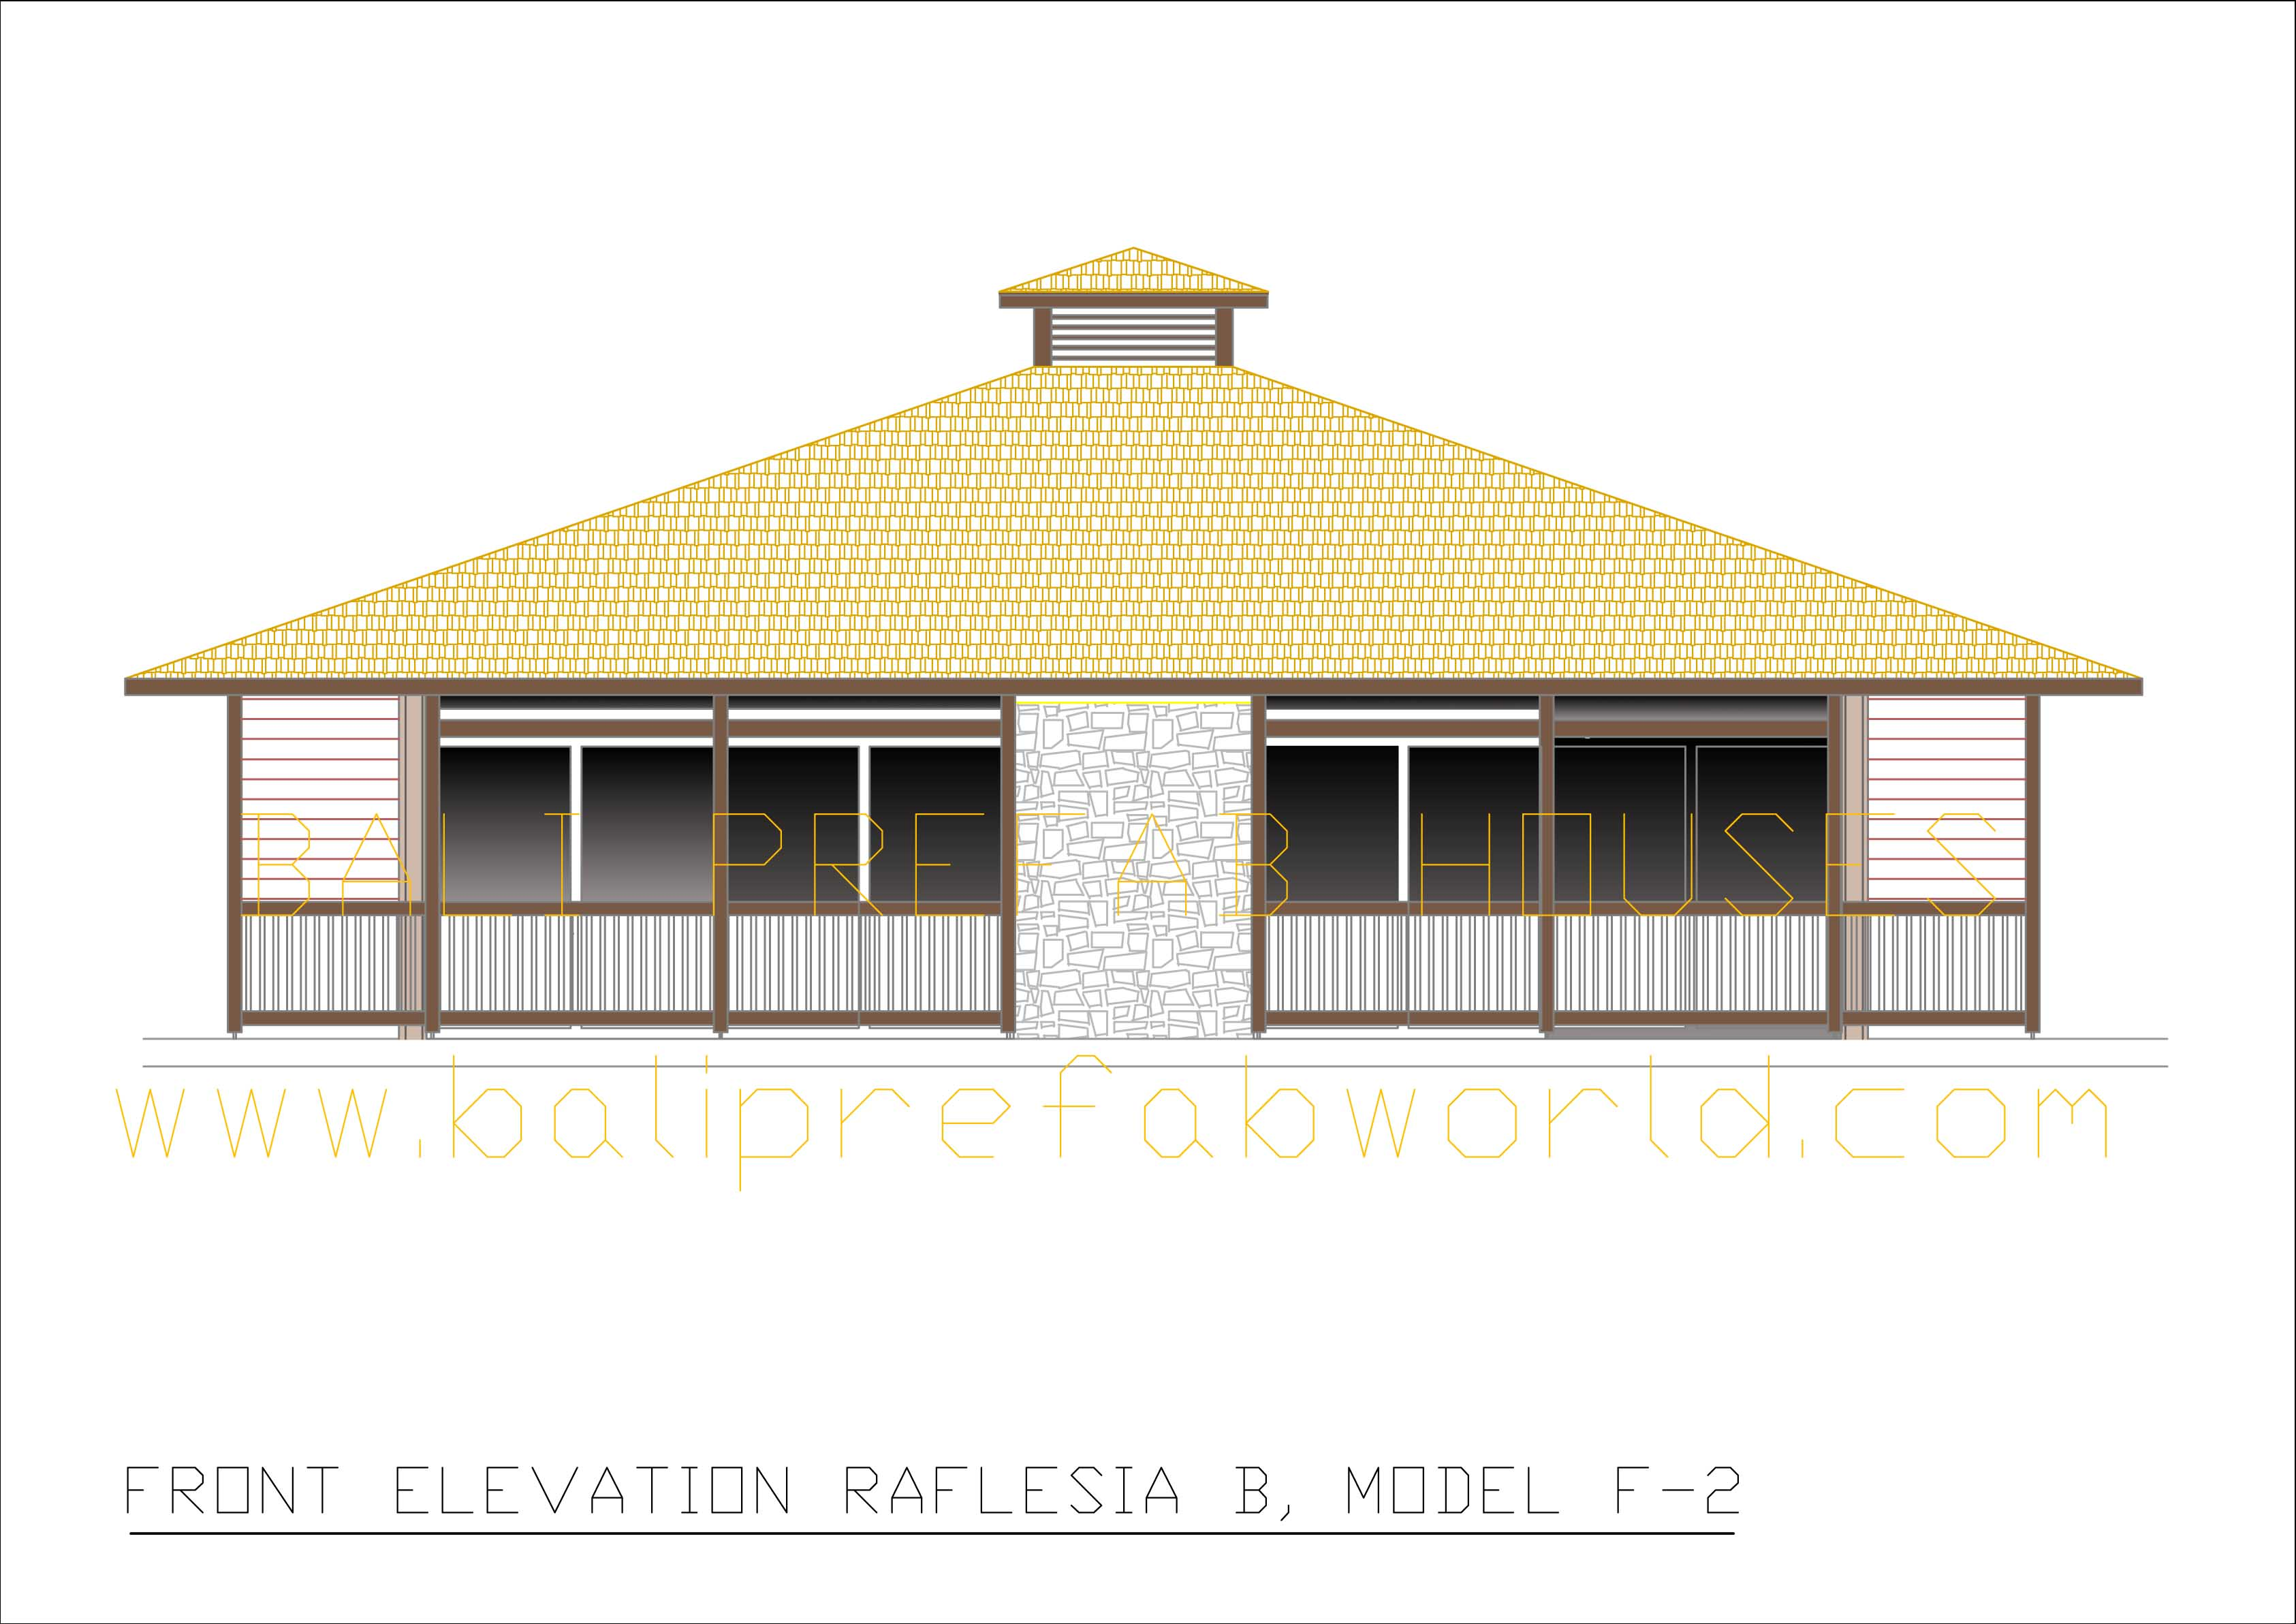 Raflesia-C front elevation